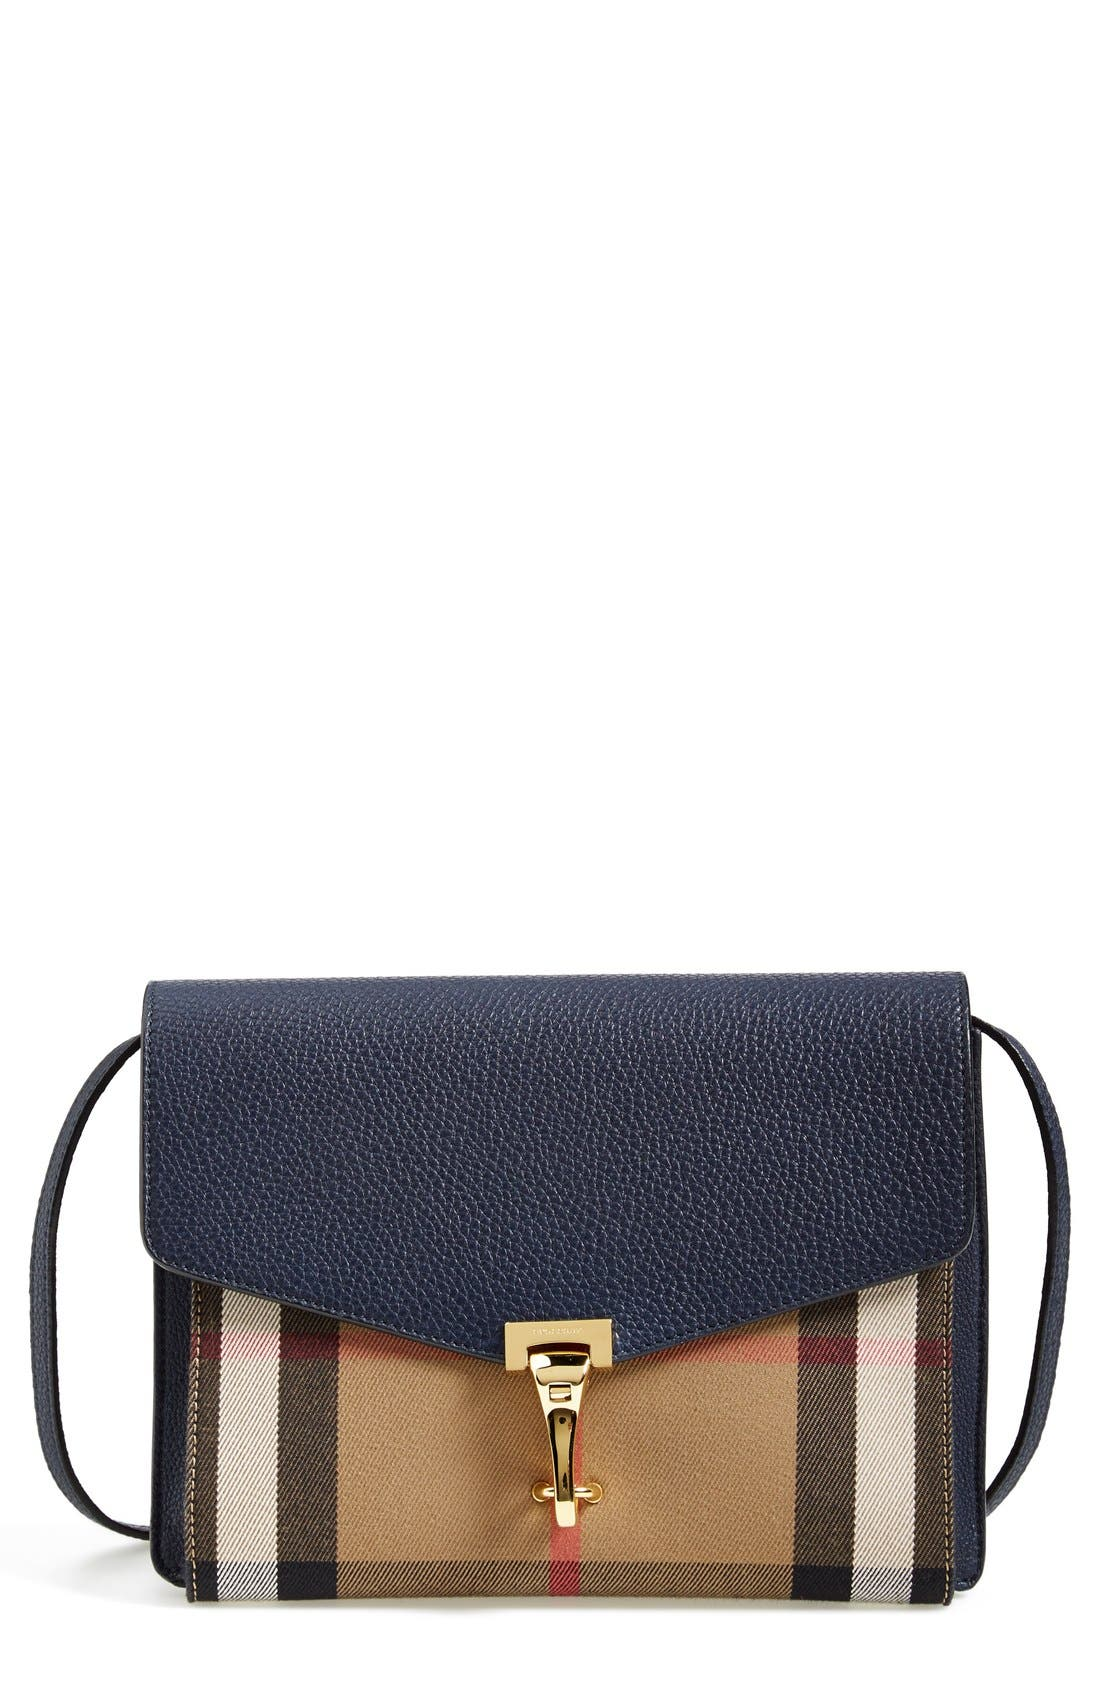 Main Image - Burberry 'Small Macken' House Check Crossbody Bag